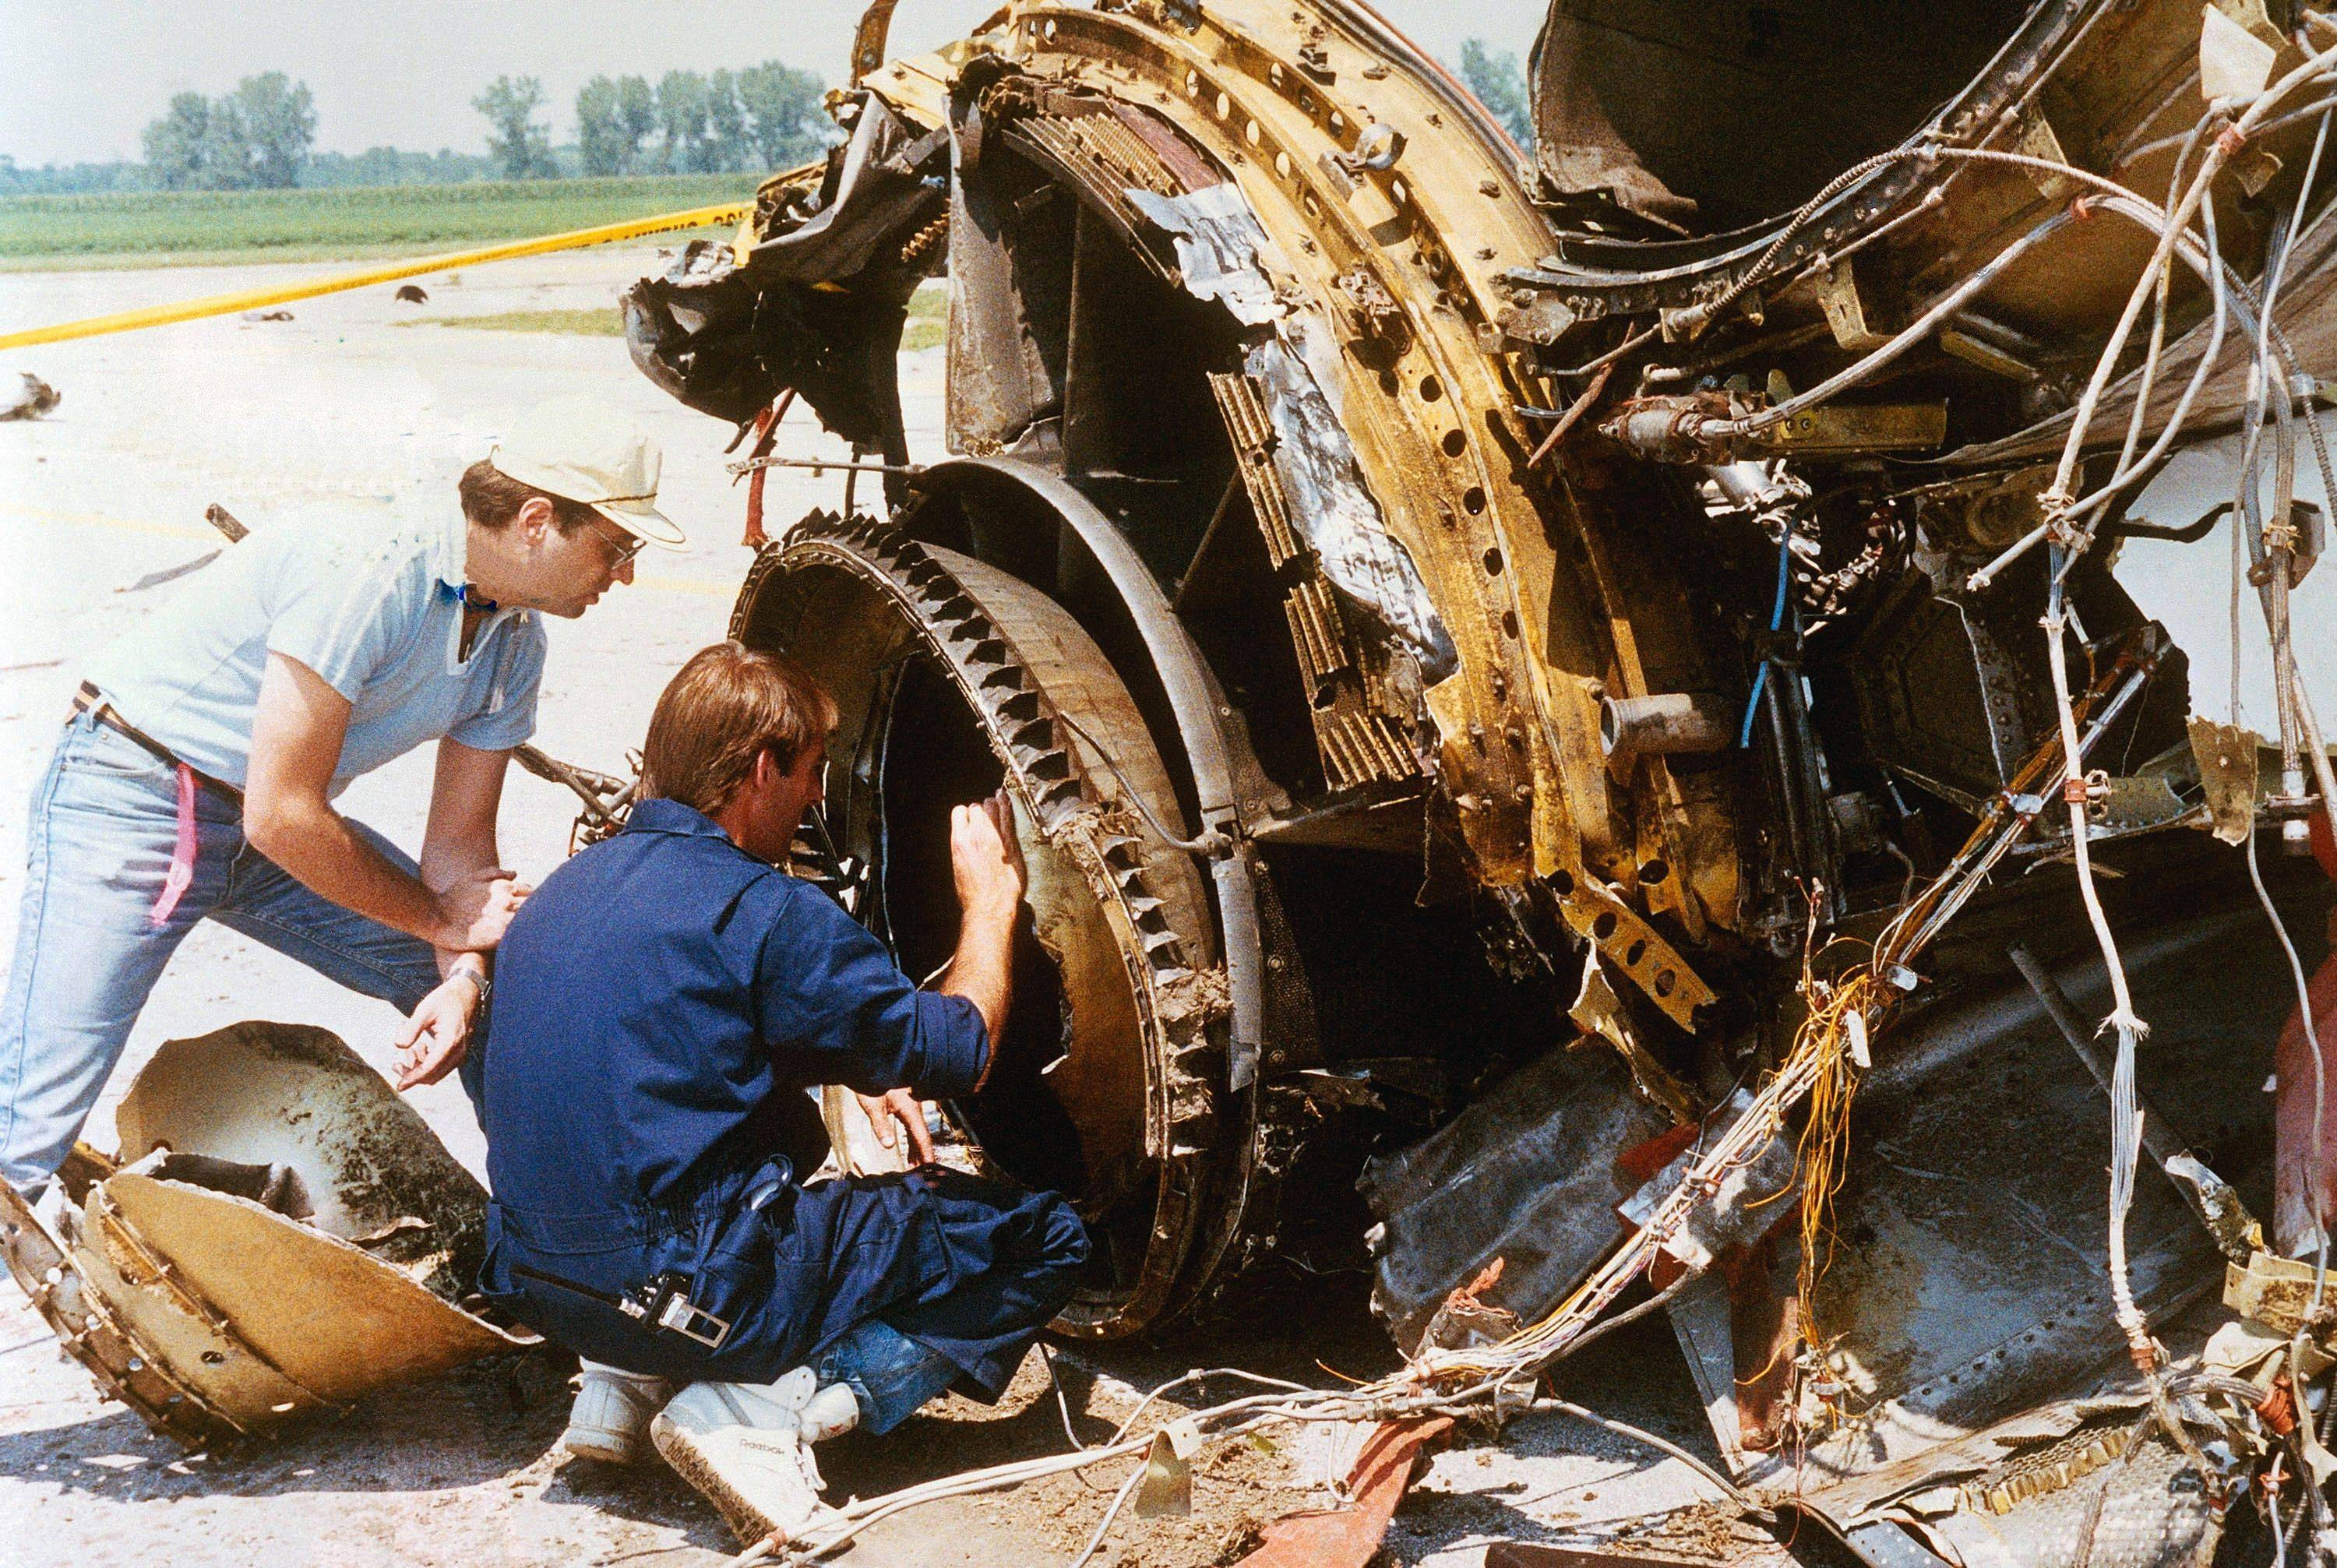 National Transportation Safety Board investigators check over the burned remains of a jet engine from a United Airlines DC-10 in Sioux City, Iowa in July 1989.